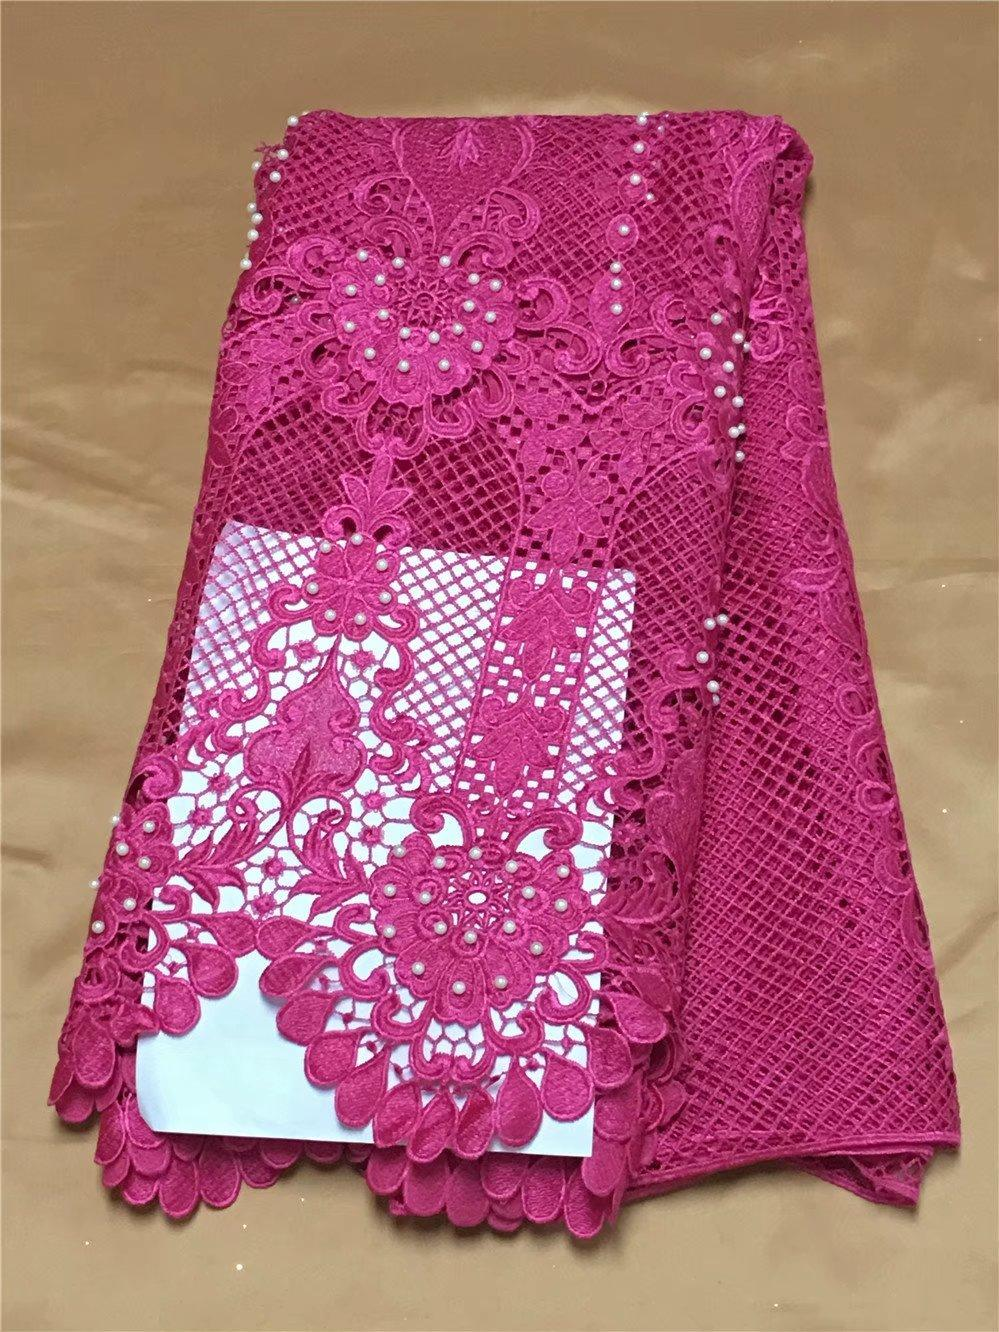 The latest red embroidery 3D dress, water-soluble bead lace, African French chiffon, high quality wedding dress 5yardYDH23